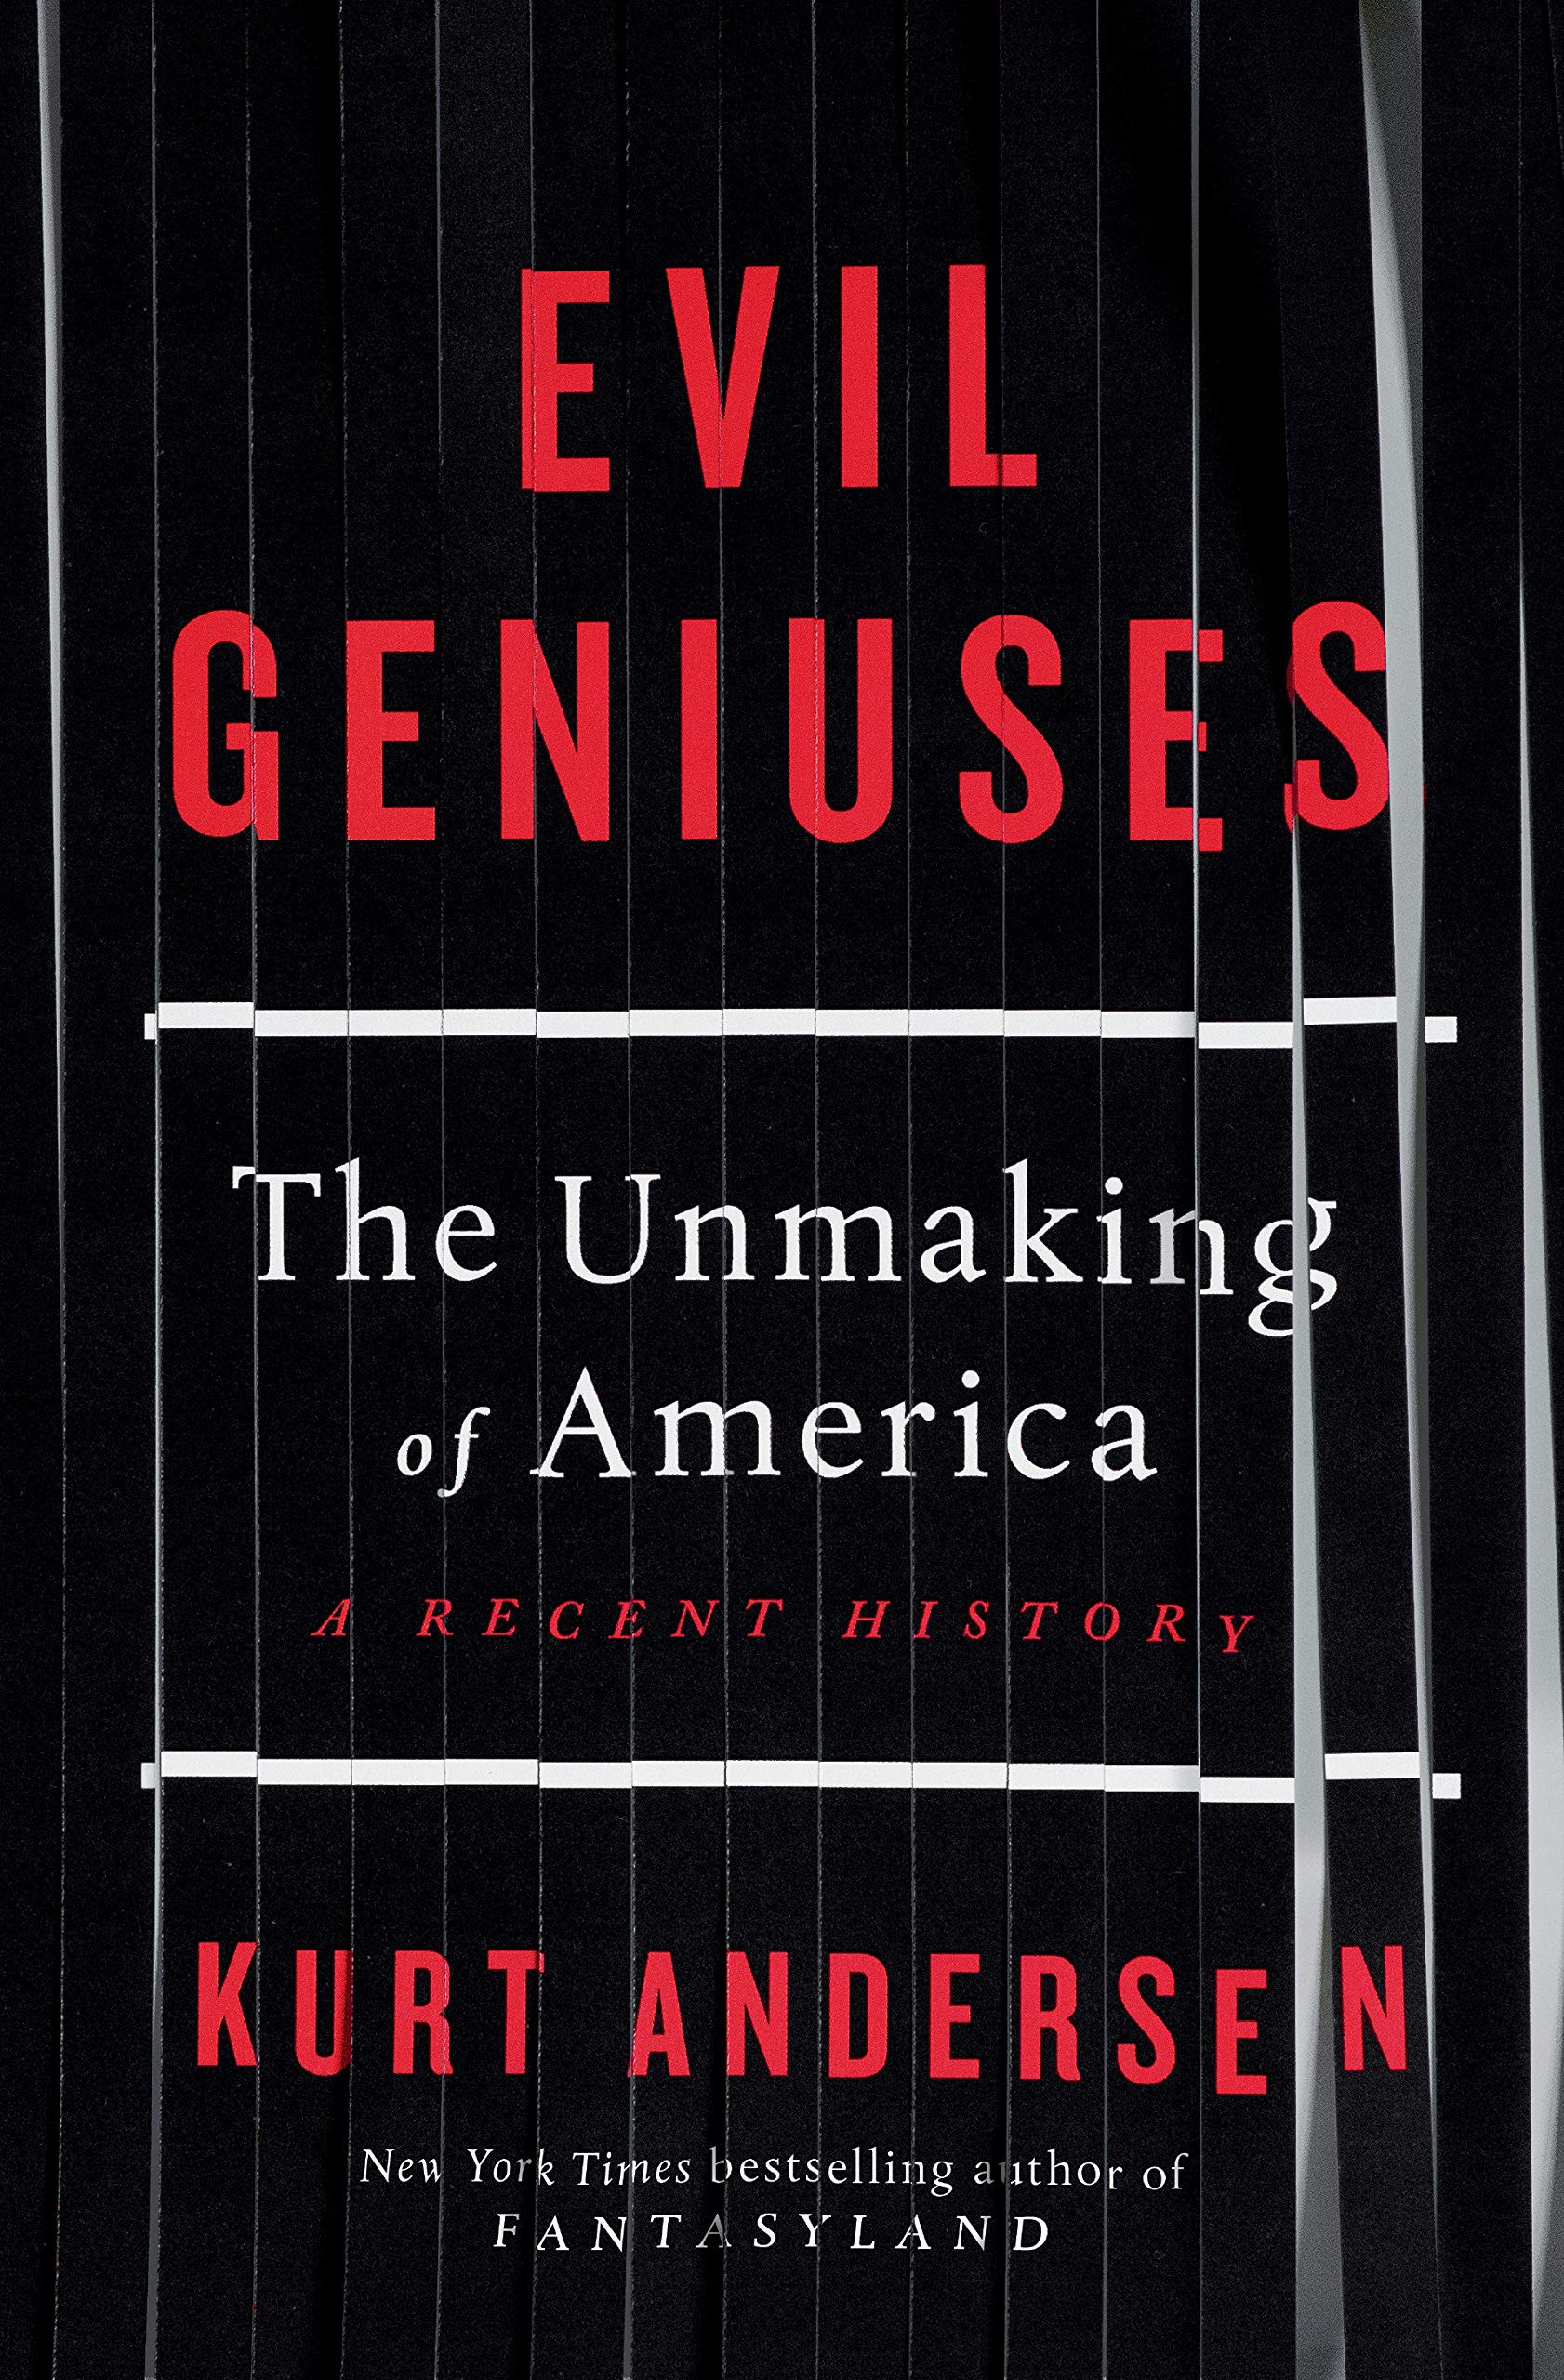 Evil Geniuses: The Unmaking of America: A Recent History WeeklyReviewer